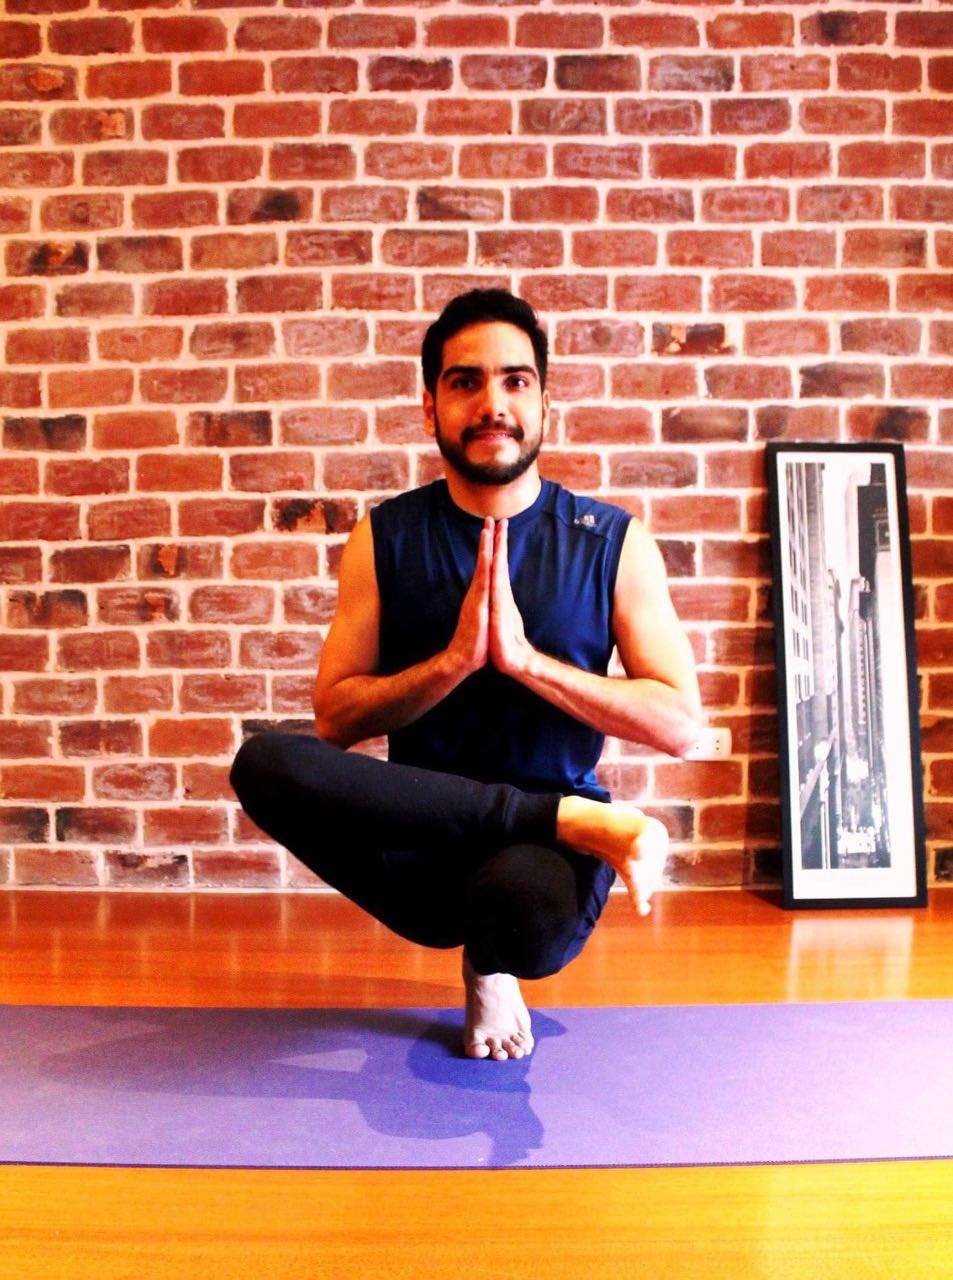 Eduardo's vision of yoga is that which combines body movement, conscious breathing, a focussed mind and a colourful spirit as a way to reach true wholeness. He achieves this by using intelligent body movement sequences that build energy, strength and flexibility; channeling the flow of the life force energy through sound pranayamas; cultivating more meditative practices through a number of kriyas or meditations and awakening the spiritual self through beautiful mantras.